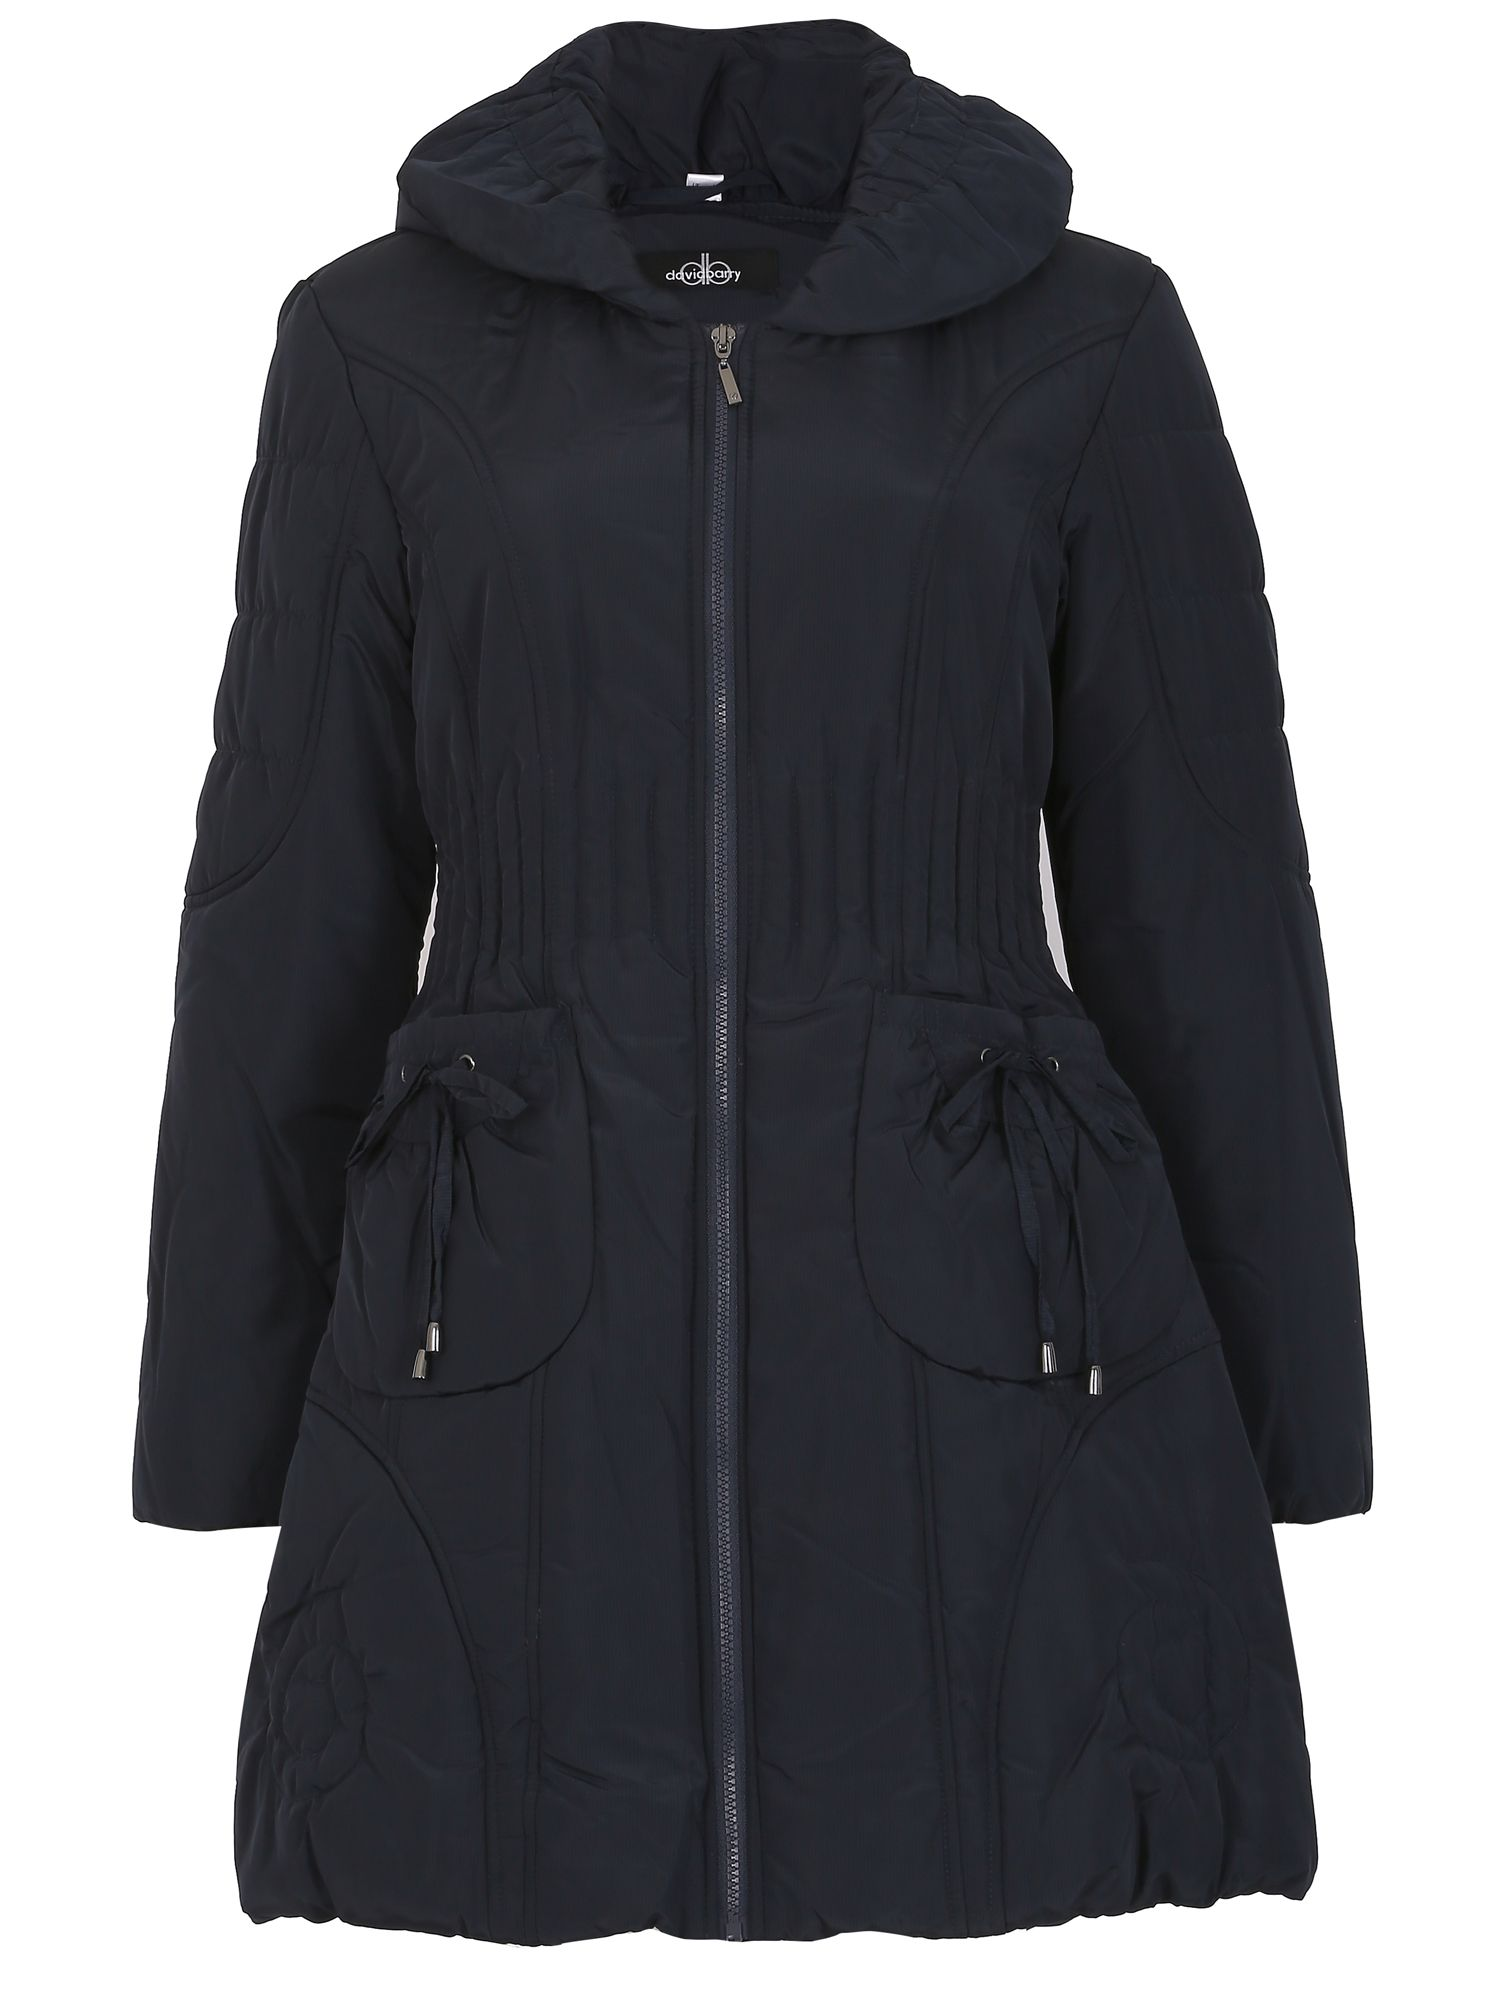 David Barry Ruched Collar 7/8 Quilted Coat, Blue